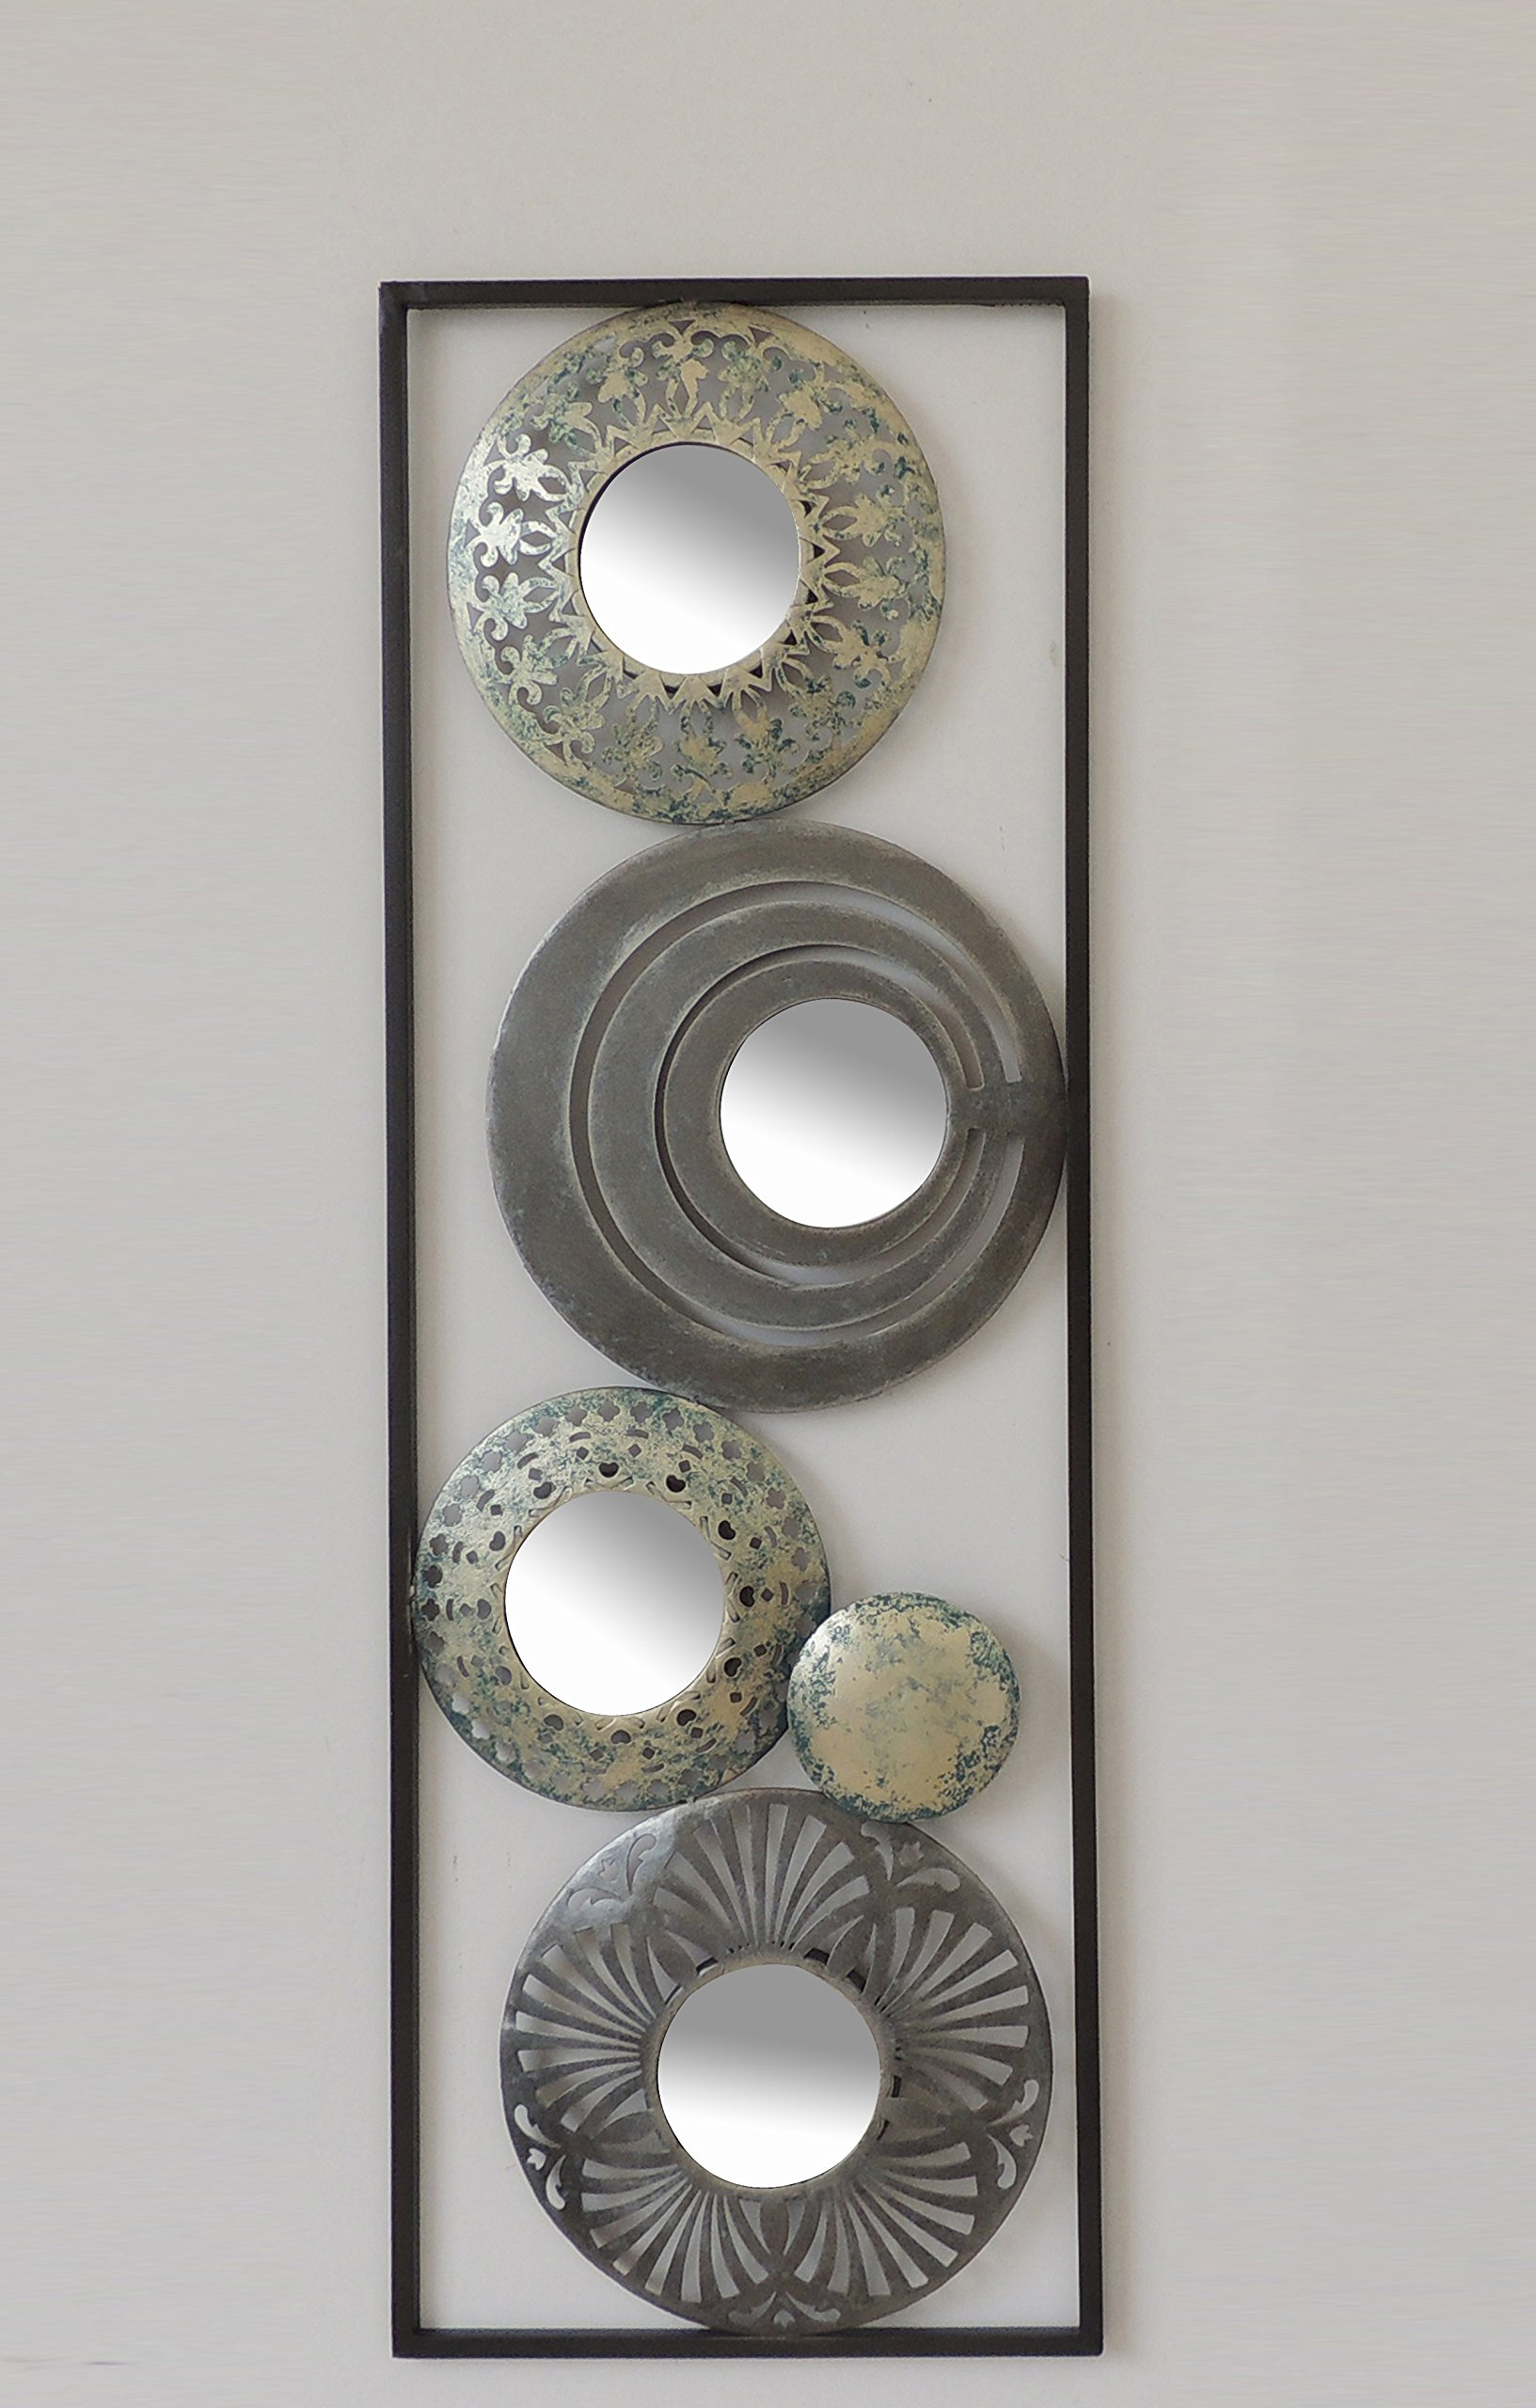 New All American Collection Modern Chic Aluminum/Metal Wall Decor with Frame 12''x36'' (Cirlcels and Mirrors) by All American Collection